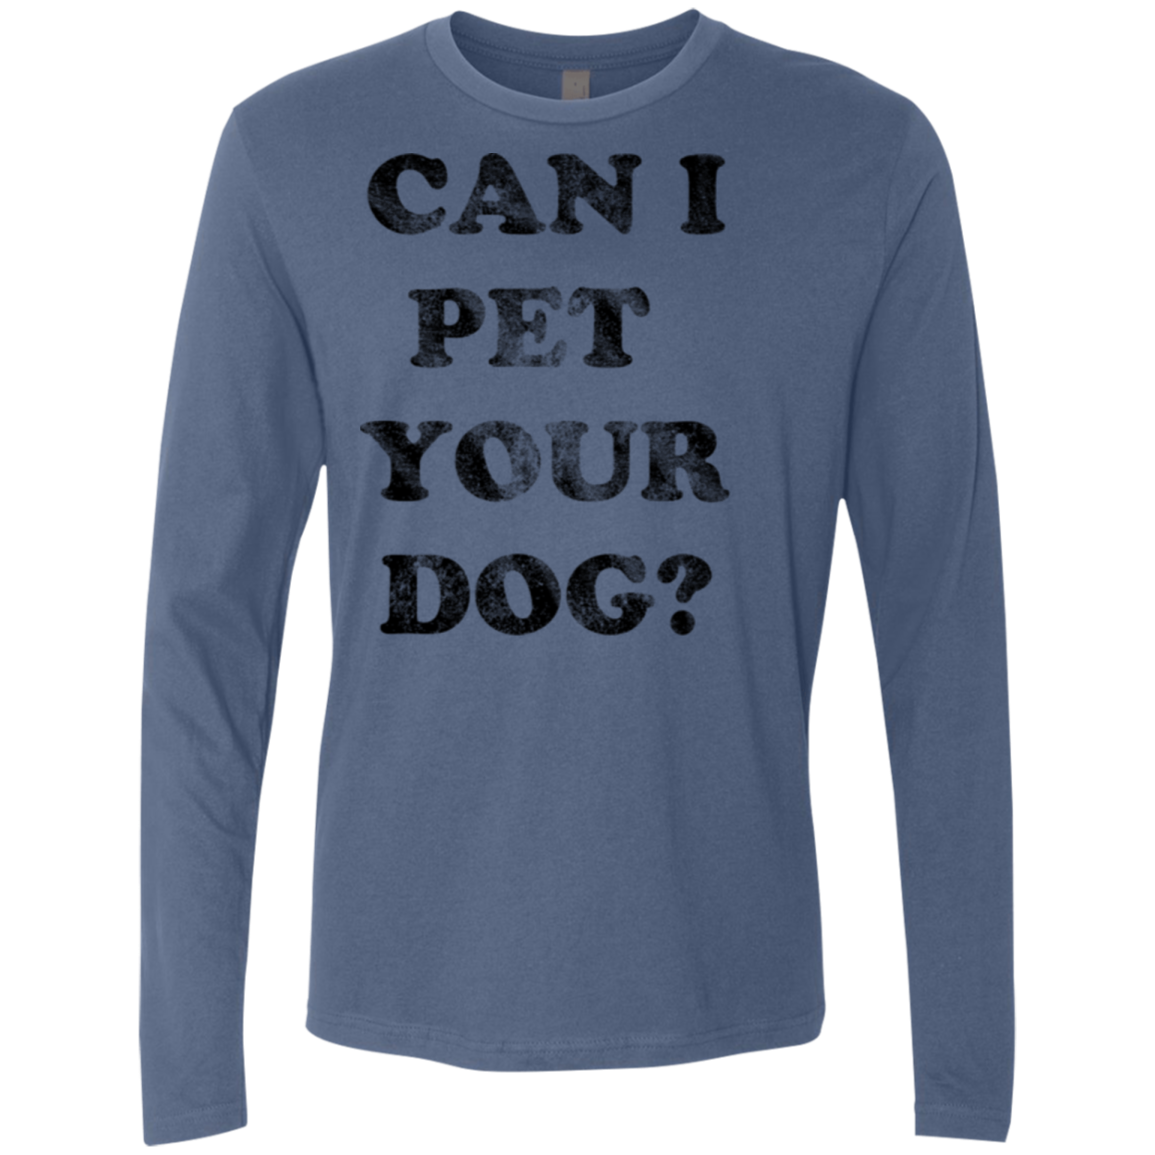 Can I Pet Your Dog Men's Long Sleeve Tee - Trendy Tees